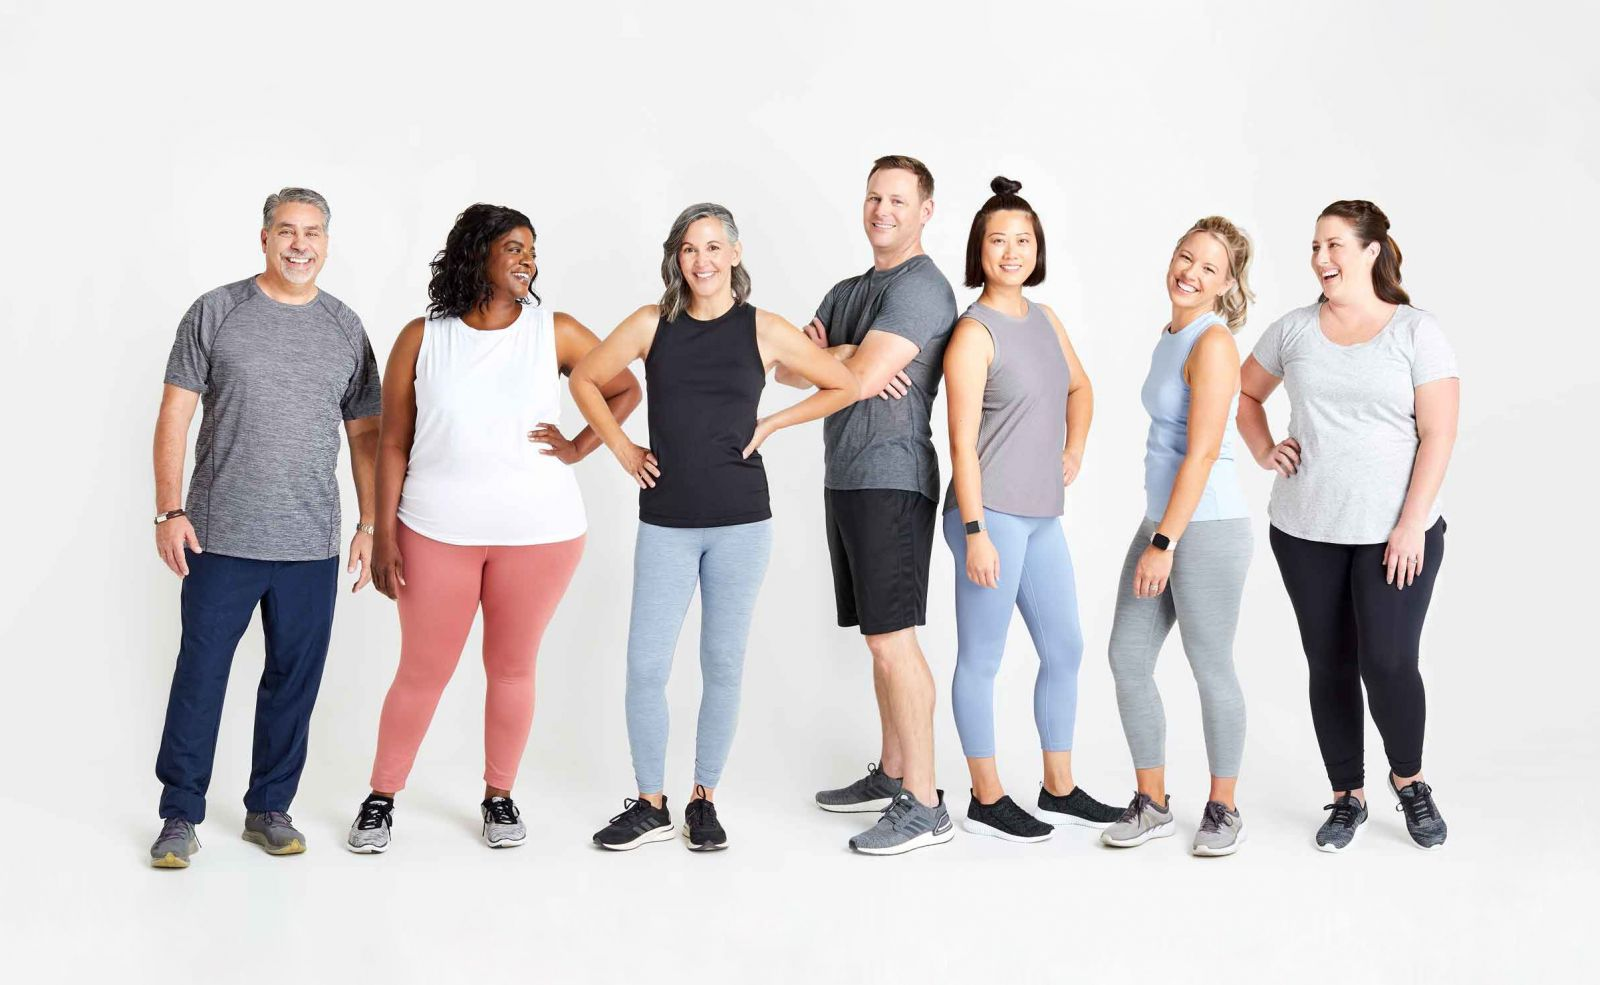 men and women in workout clothes